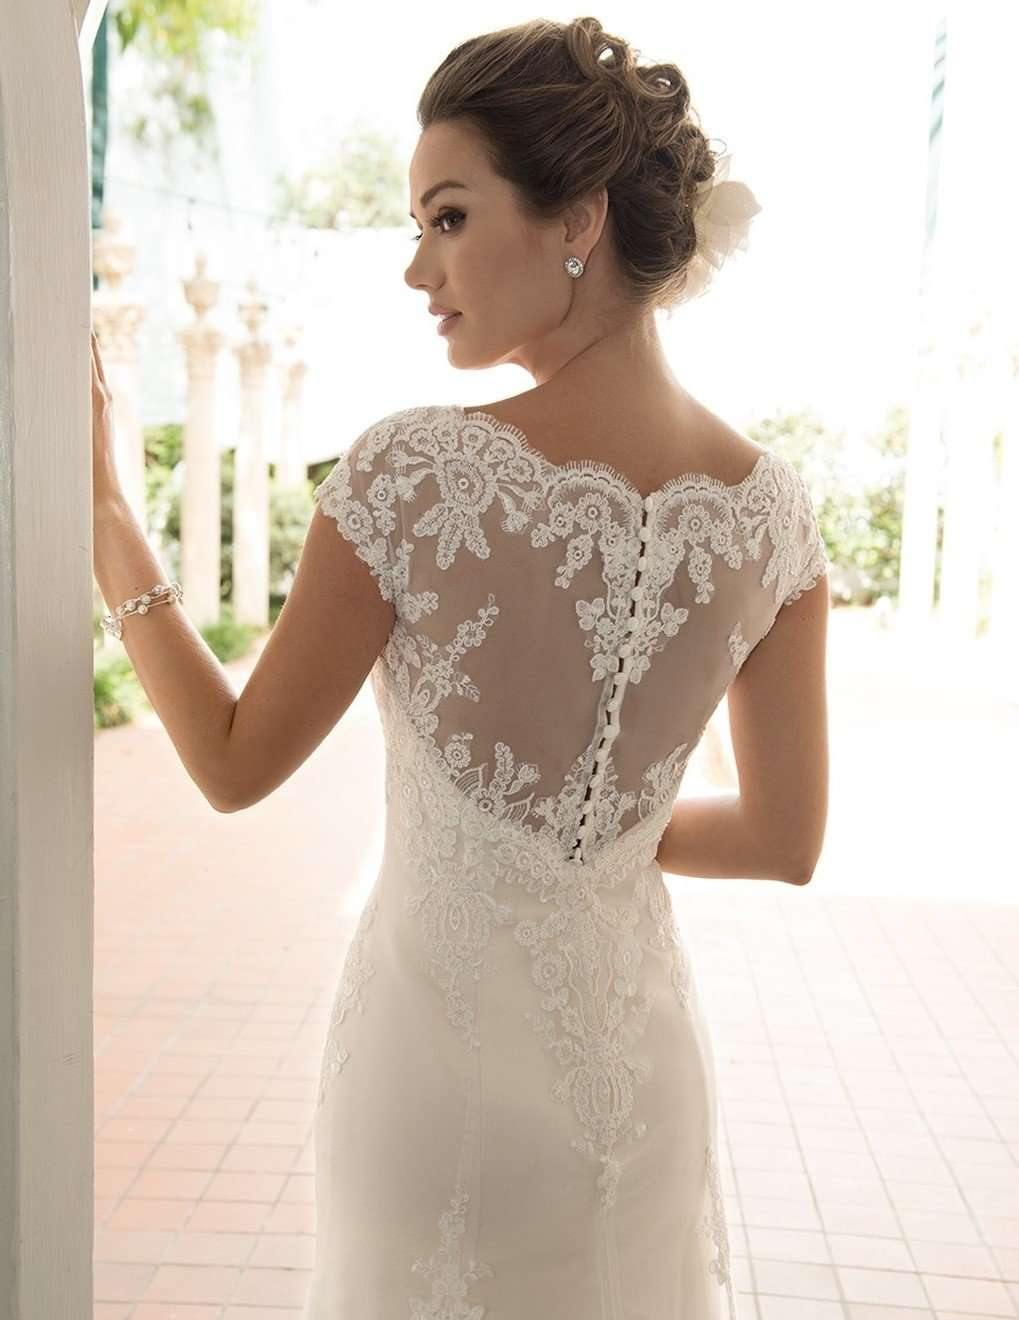 Conny PLUS - Adore Bridal and Occasion Wear